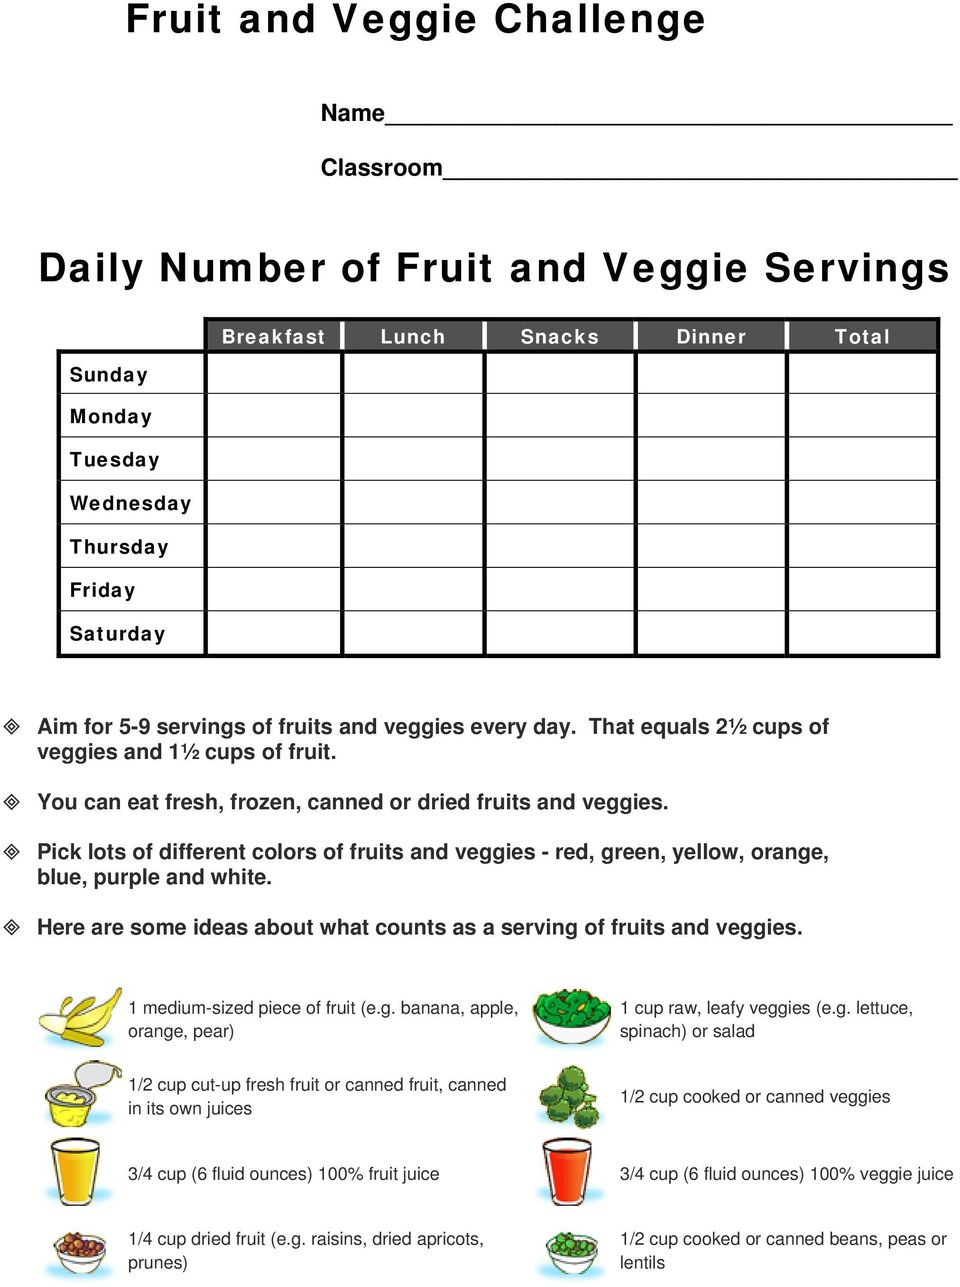 Pick lots of different colors of fruits and veggies - red, green, yellow, orange, blue, purple and white. Here are some ideas about what counts as a serving of fruits and veggies.